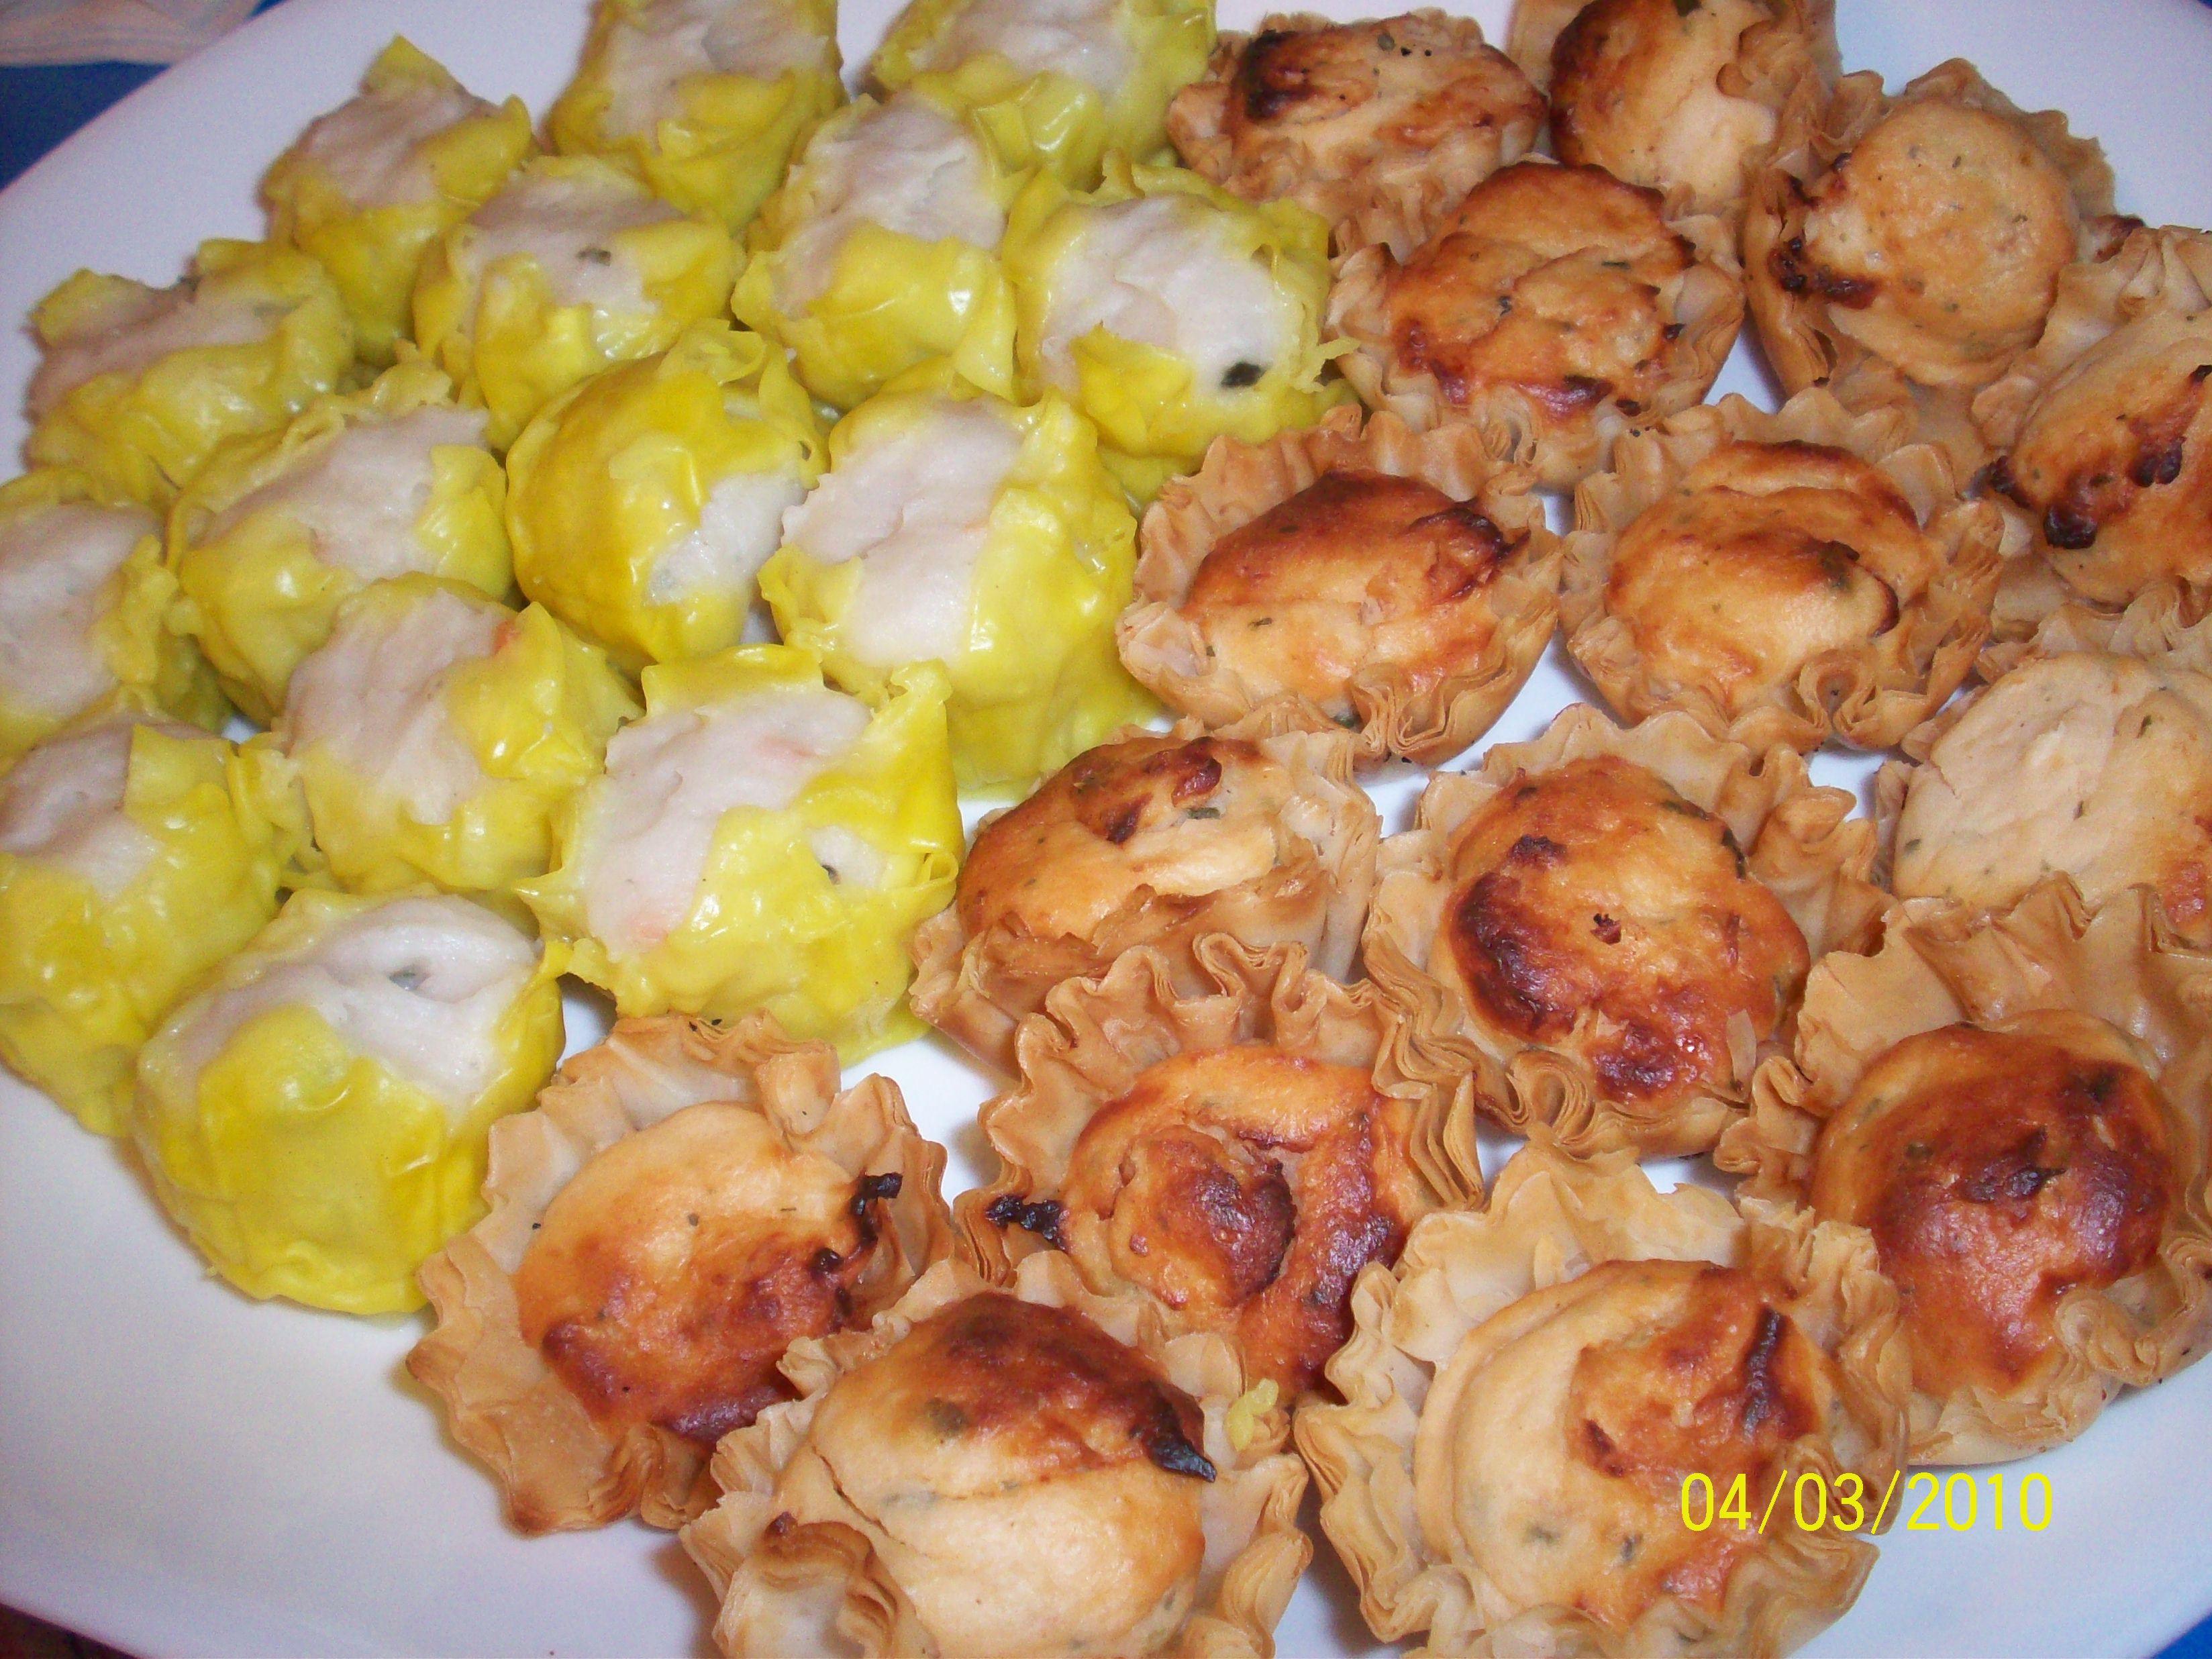 http://foodloader.net/cutie_2010-03-04_Fish_Shao-Mai_and_Salmon_and_Cream_Cheese_Phyllo_T.jpg